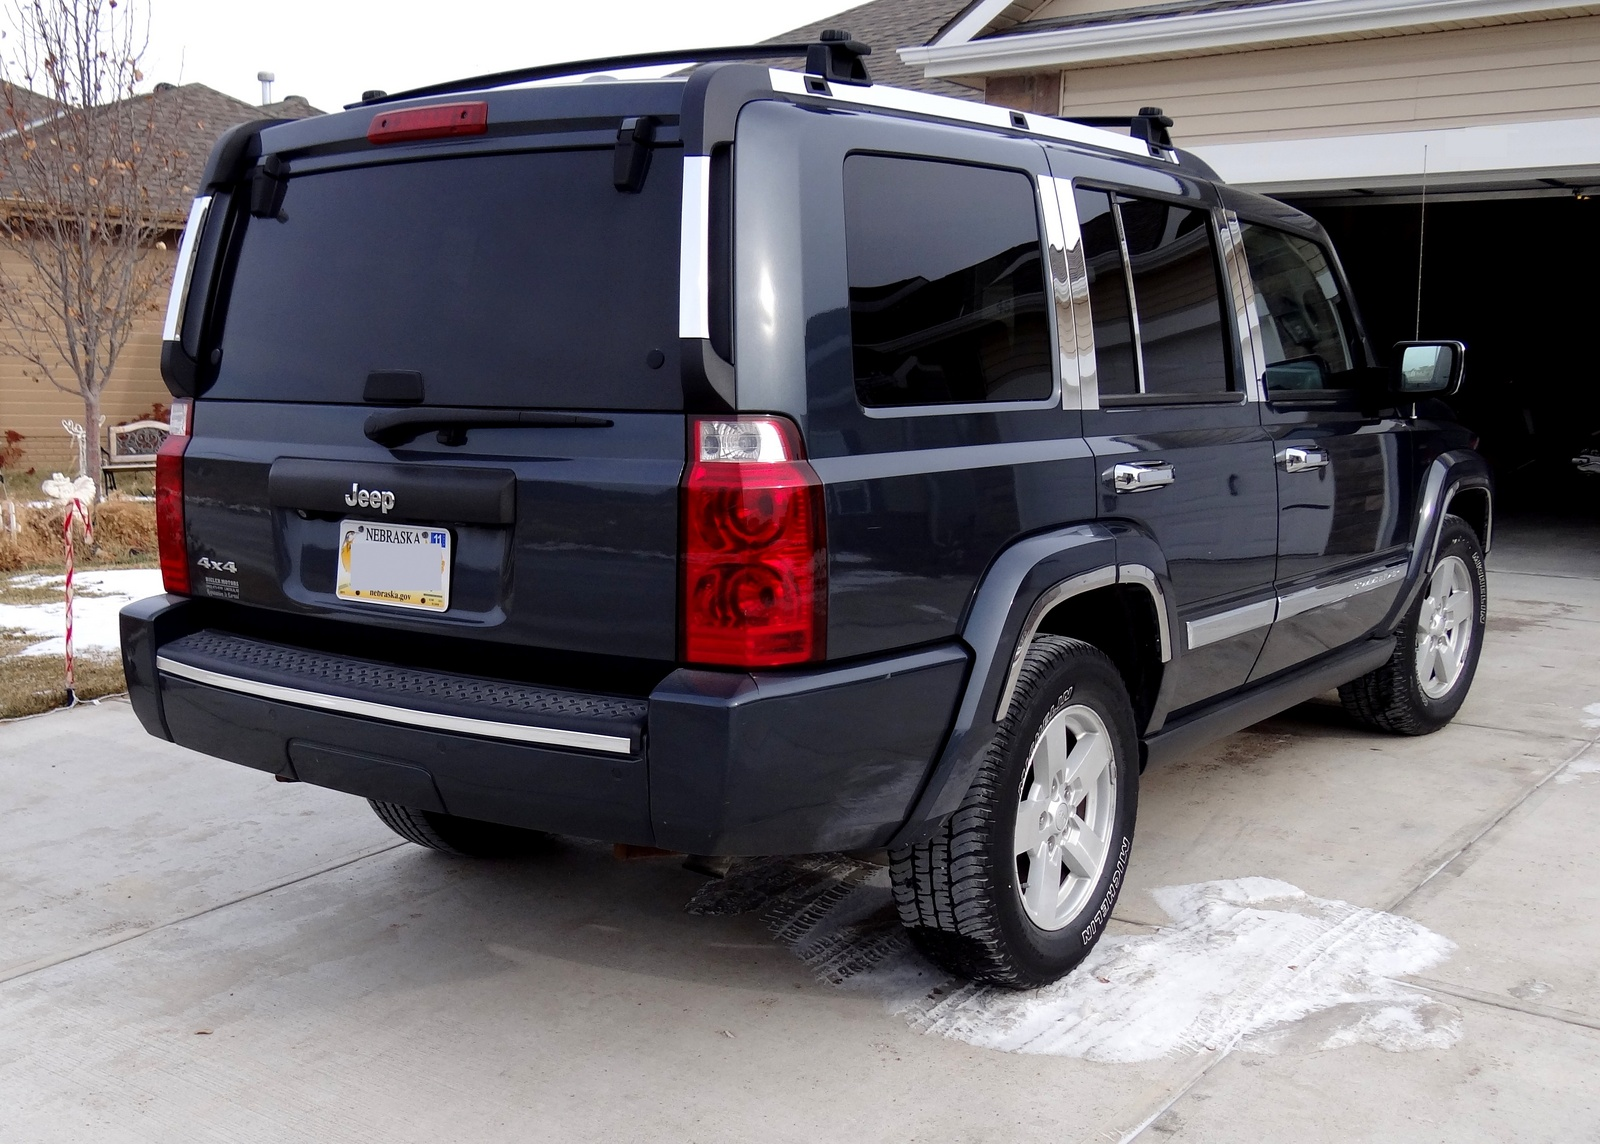 2006 Jeep Commander Limited 2wd: Jeep Commander Technical Specifications And Fuel Economy